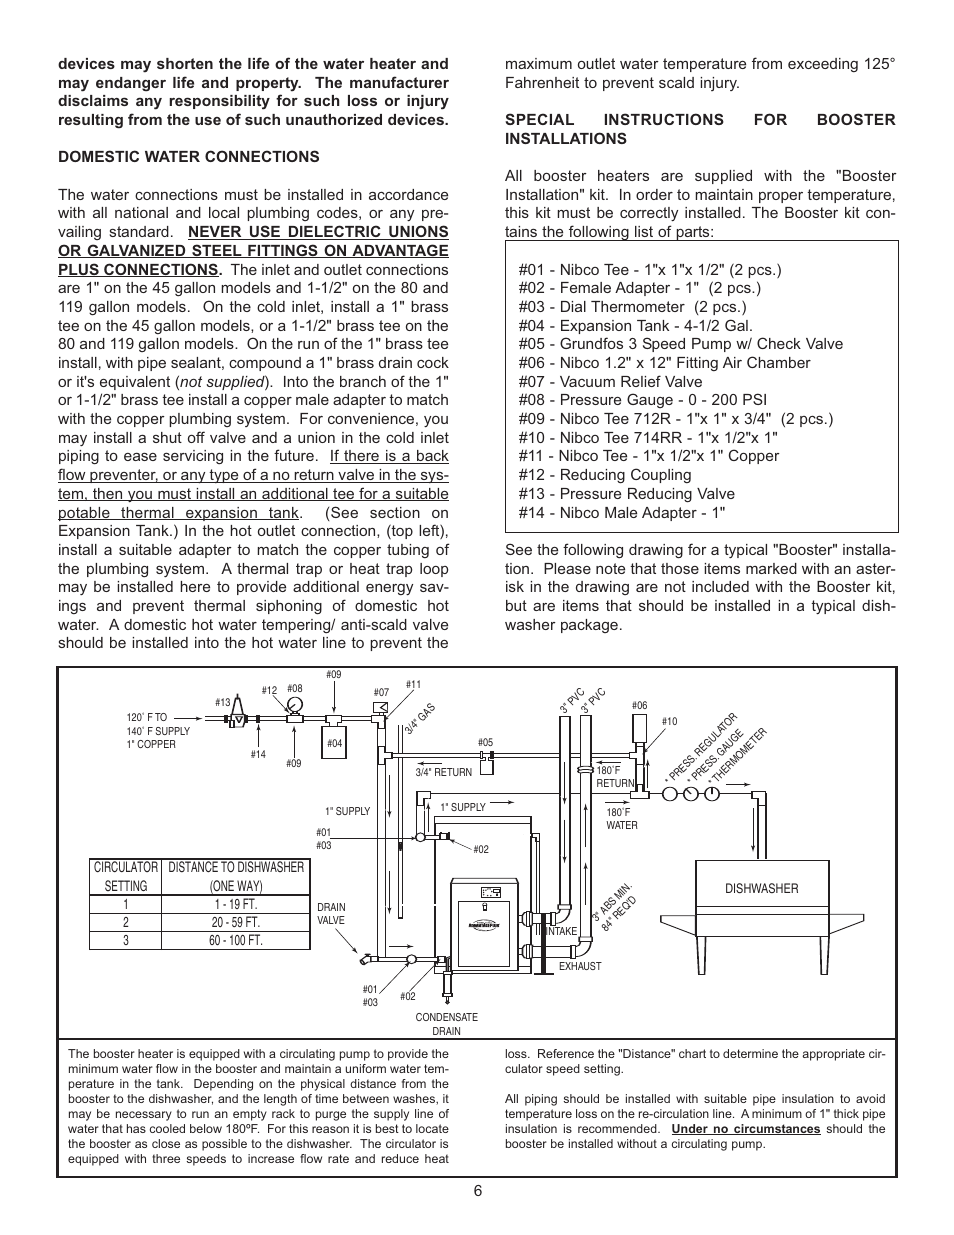 Rheem He80 130lp User Manual Page 6 30 Also For